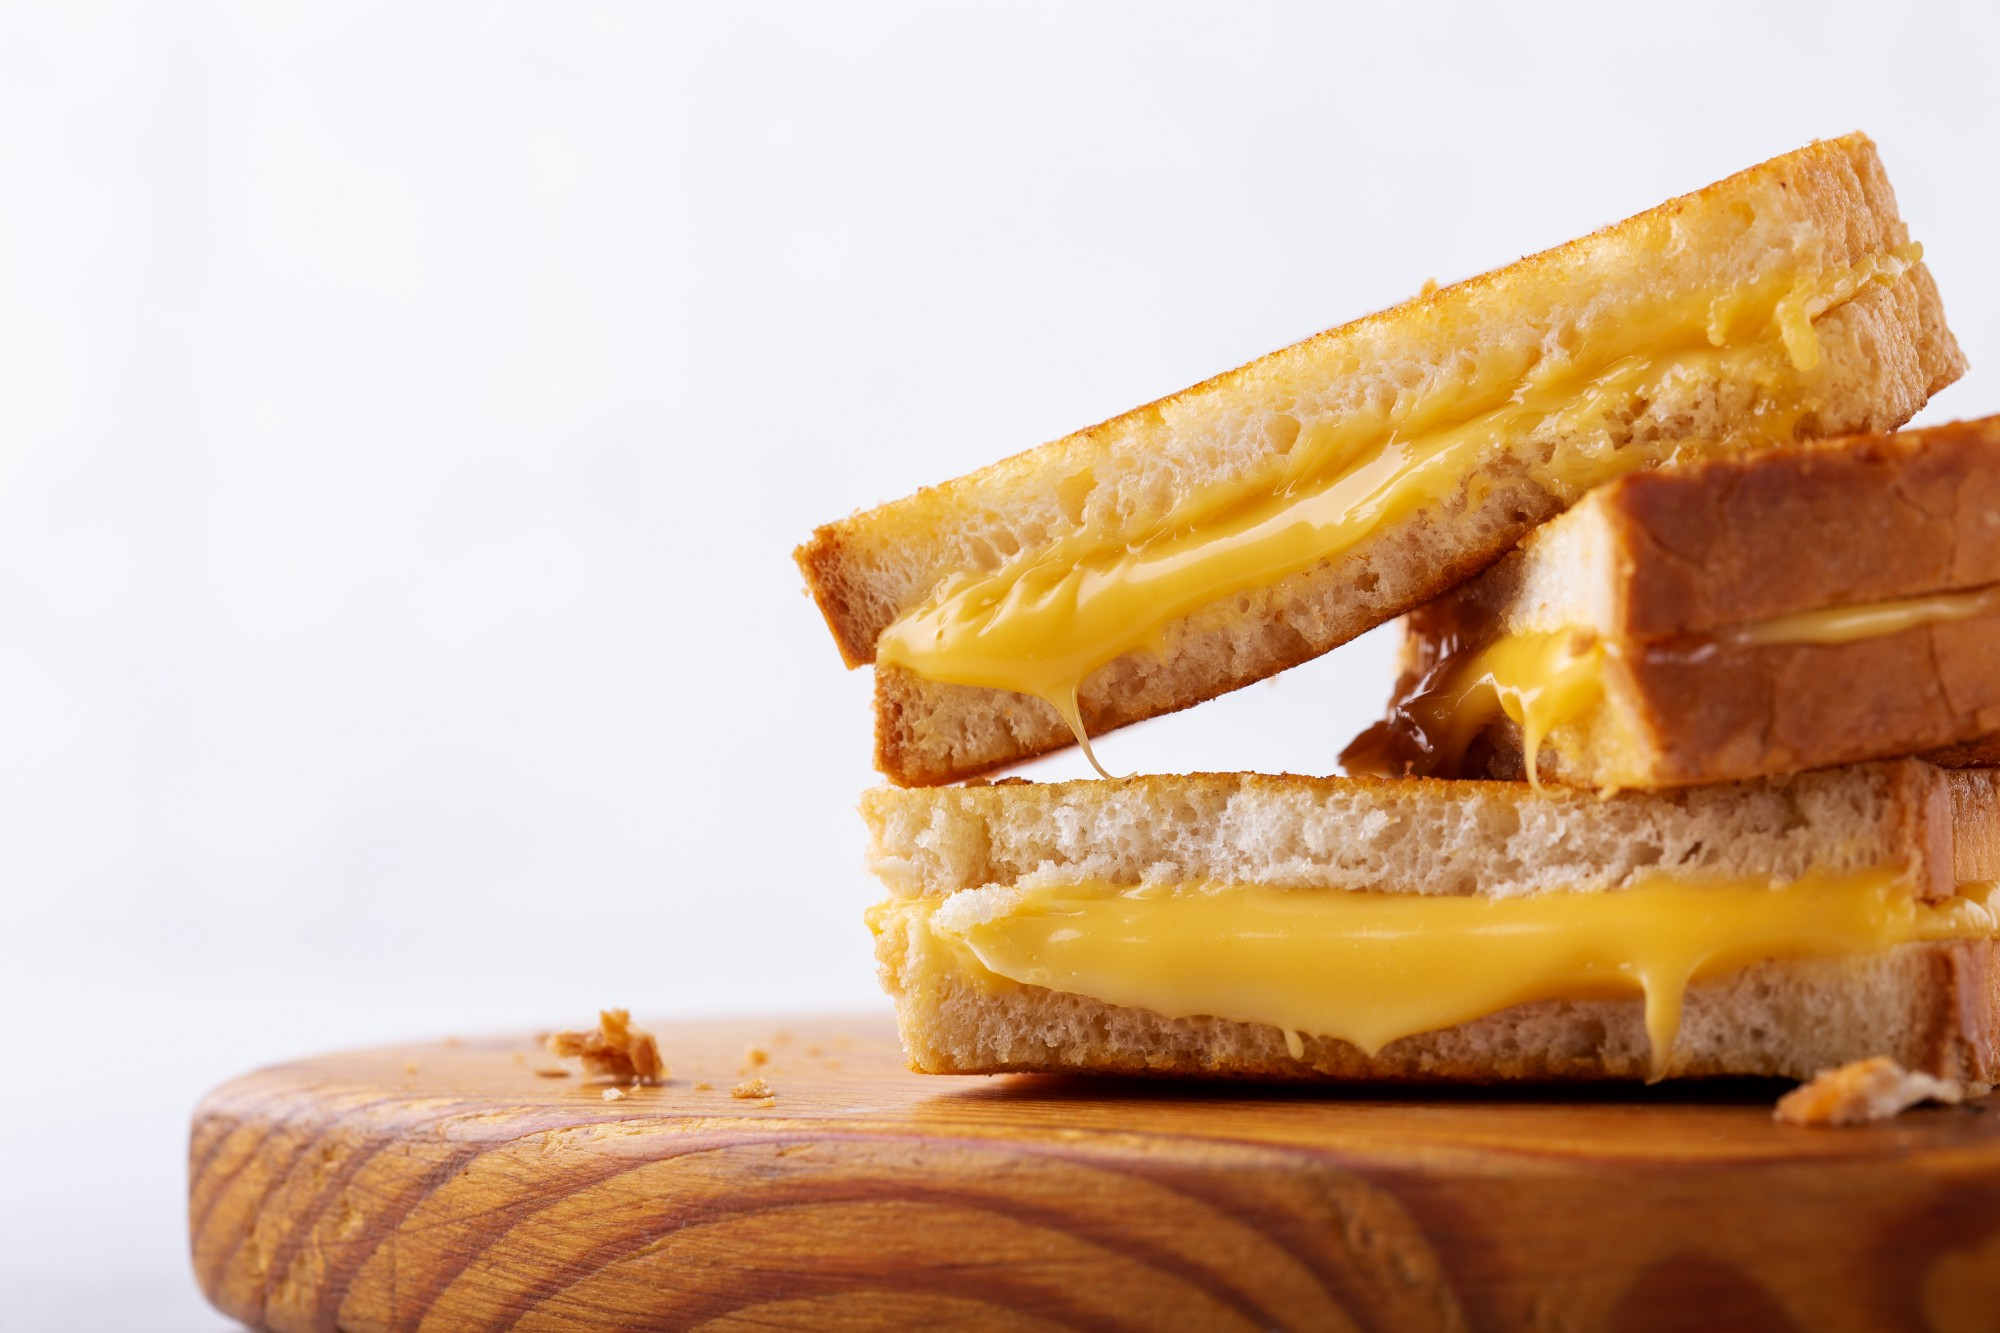 A close-up of a grilled cheese sandwich.